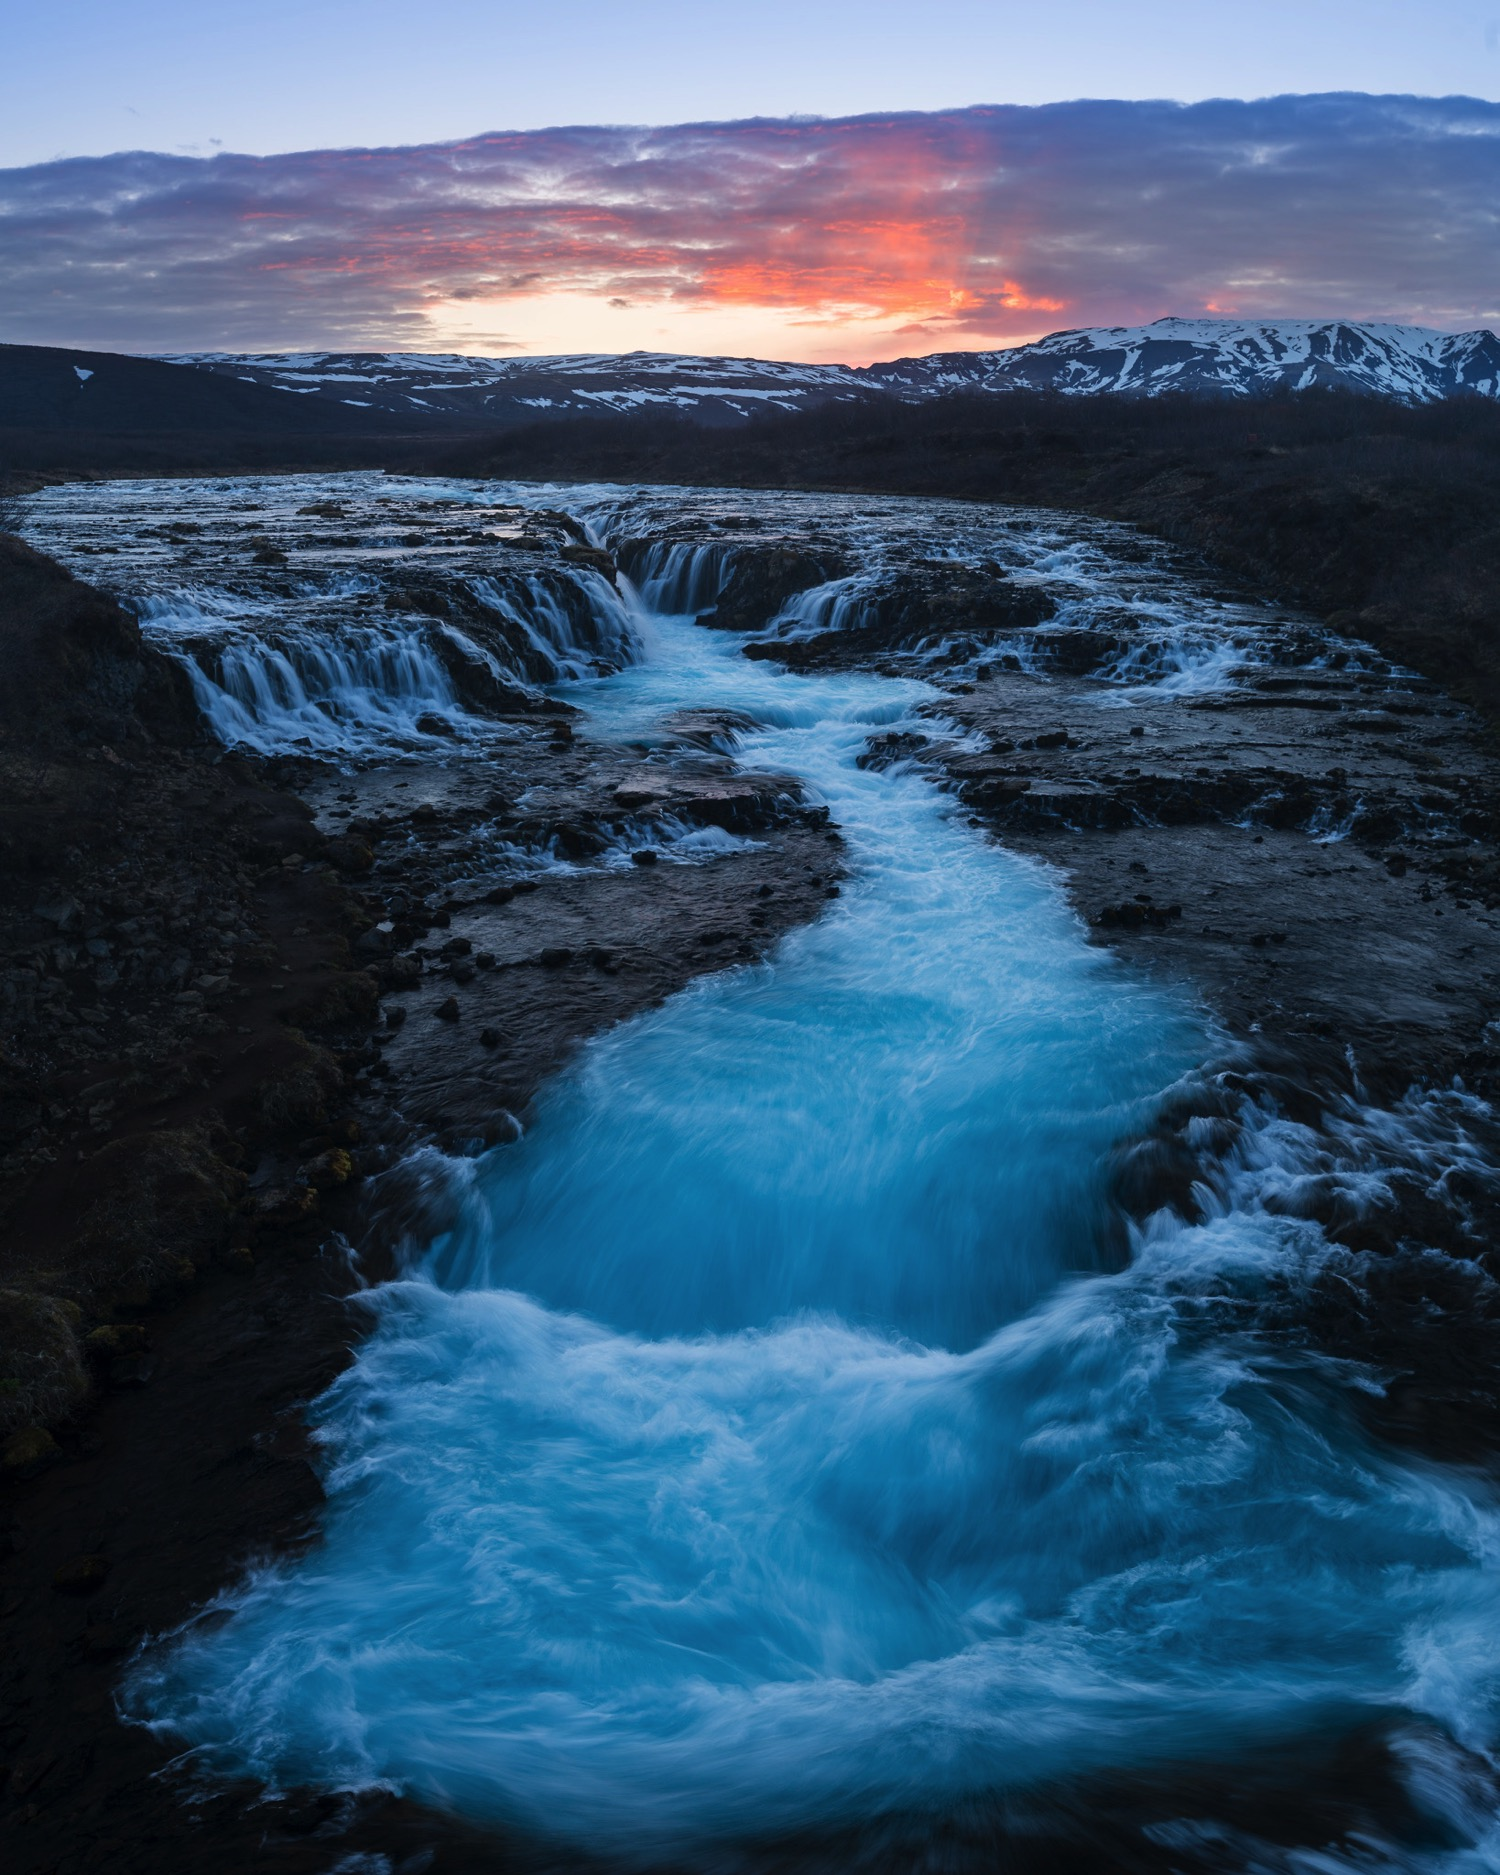 Sunset at Bruarfoss - Iceland Blog Part II